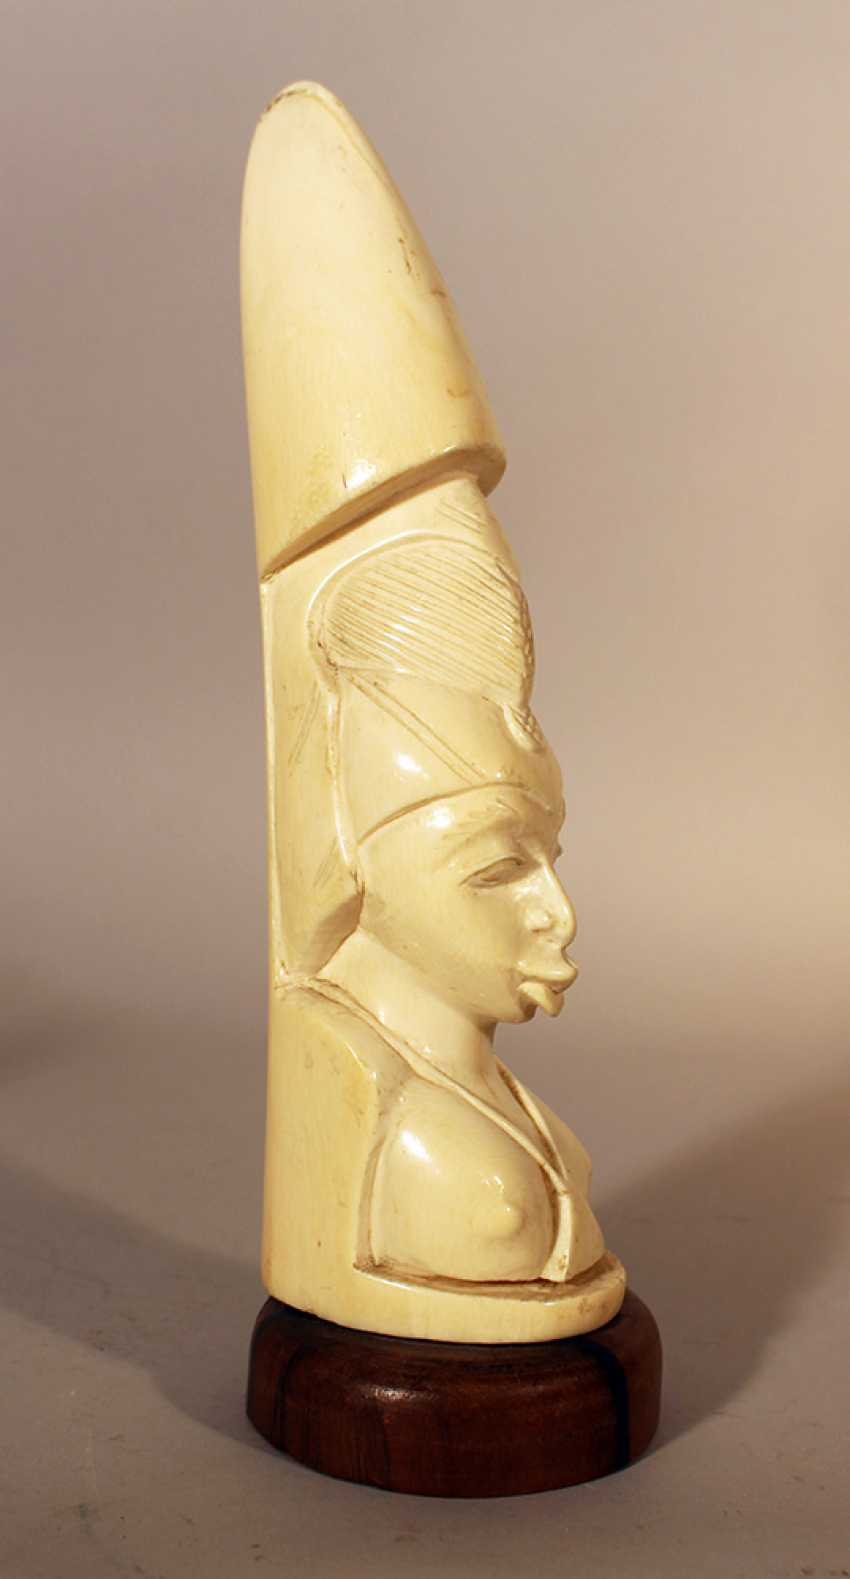 Two African ivory sculptures of male and female portraits, on wooden stands - photo 2